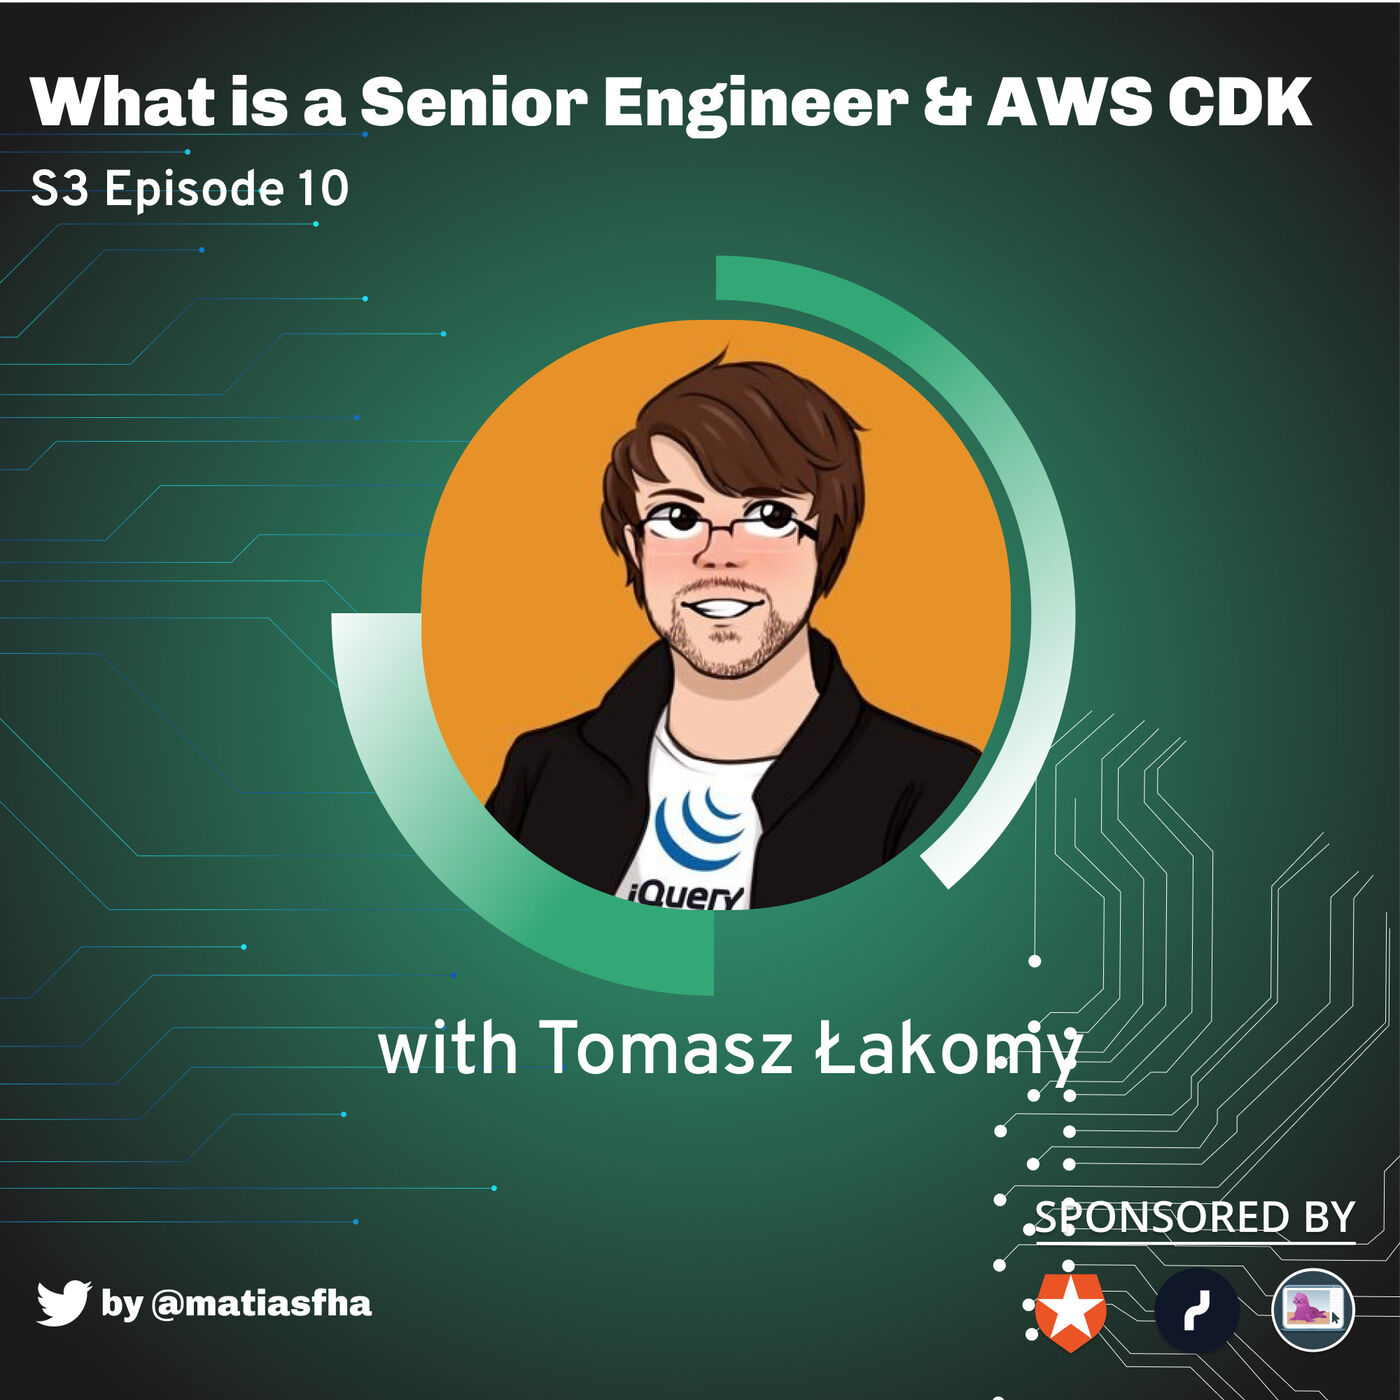 What is a Senior Engineer & AWS CDK with Tomasz Łakomy